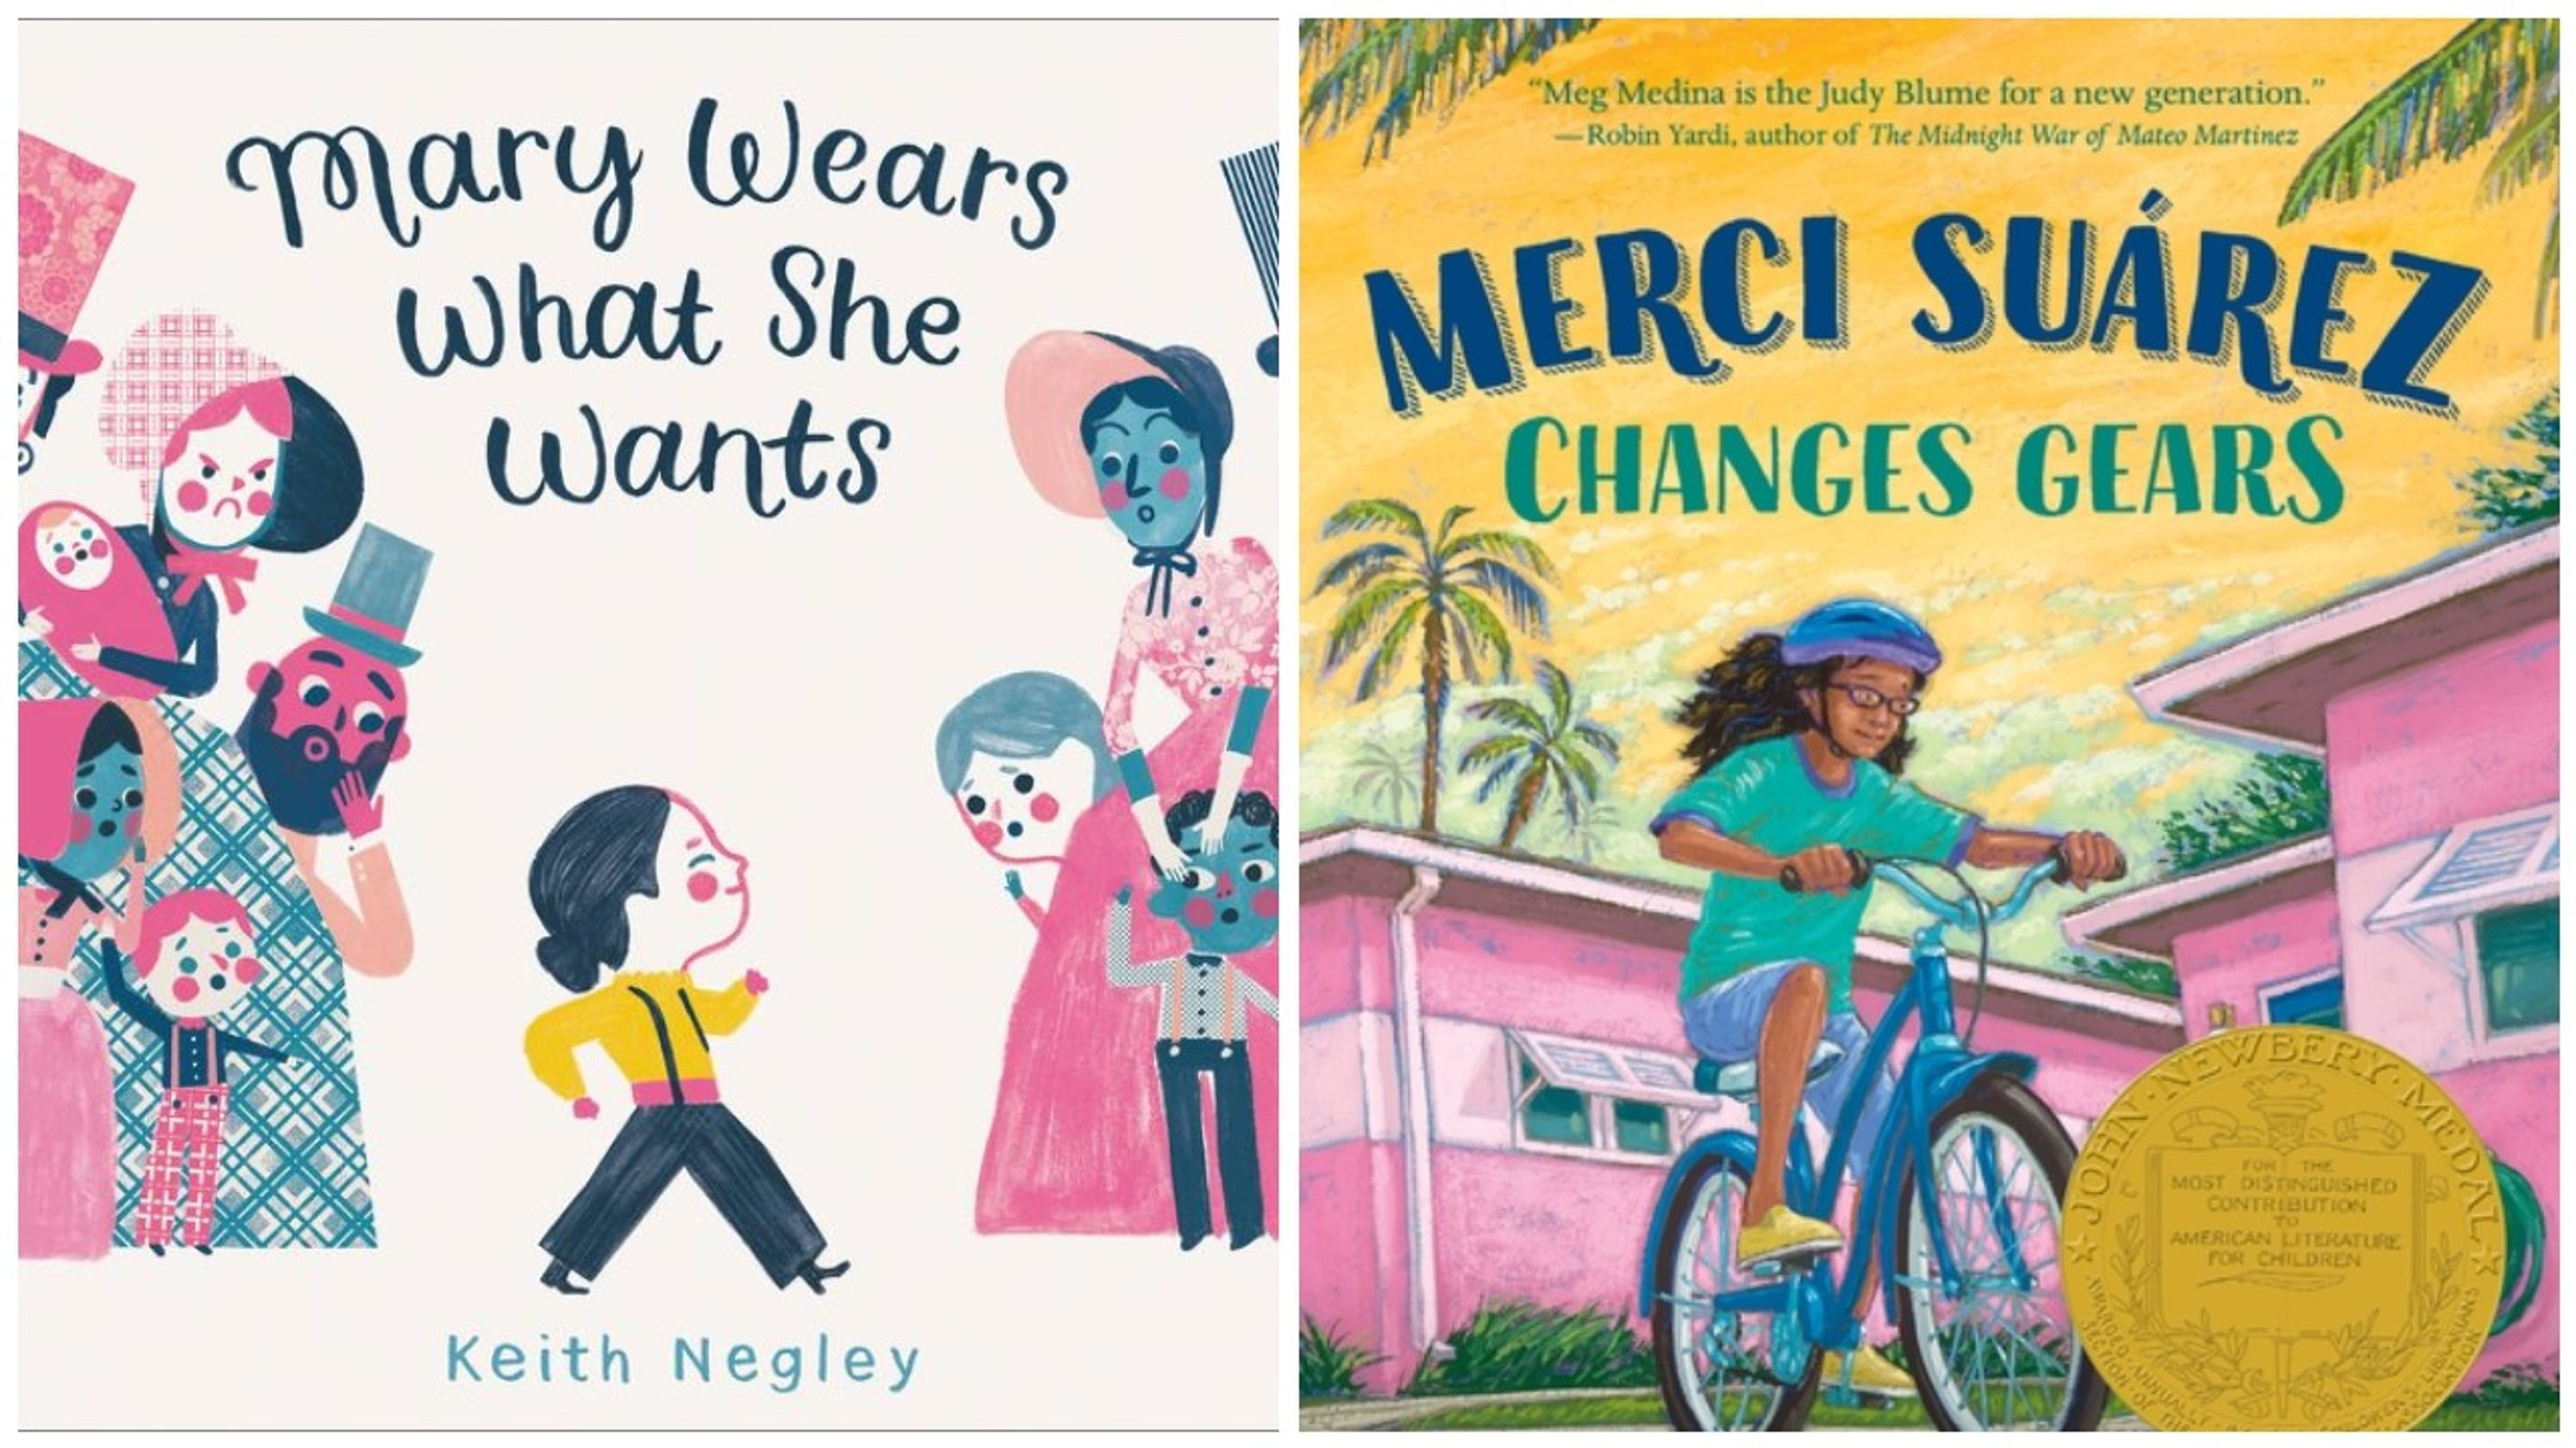 diversity books children multicultural childrens story read titles reflect different cultures gears mary scholastic press today